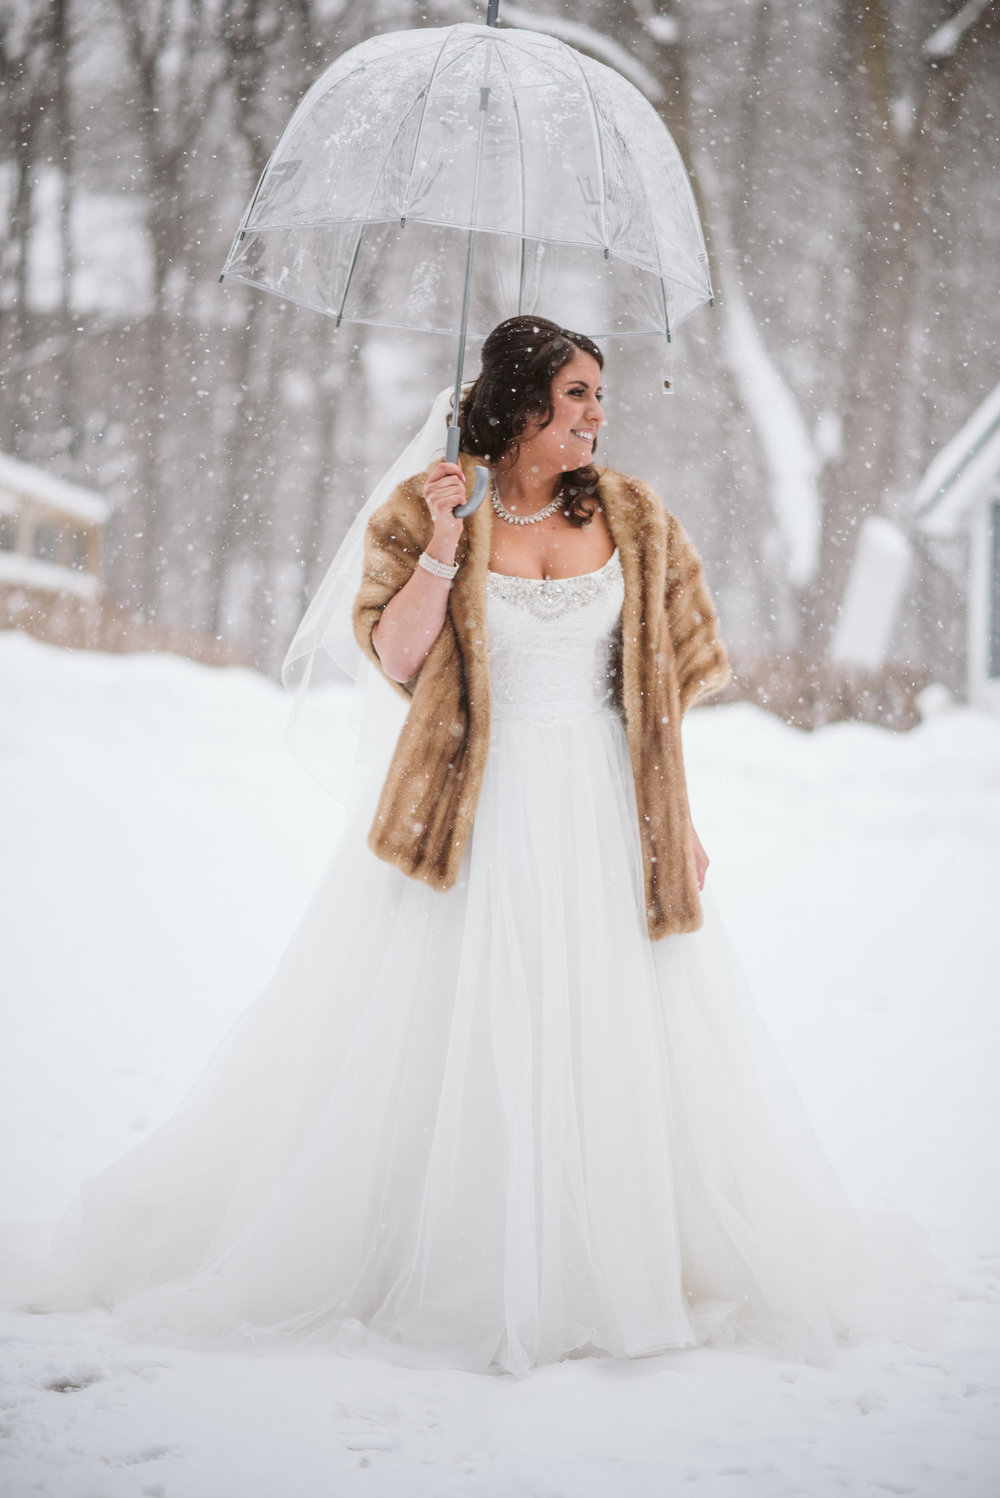 Bride under umbrella in the snow